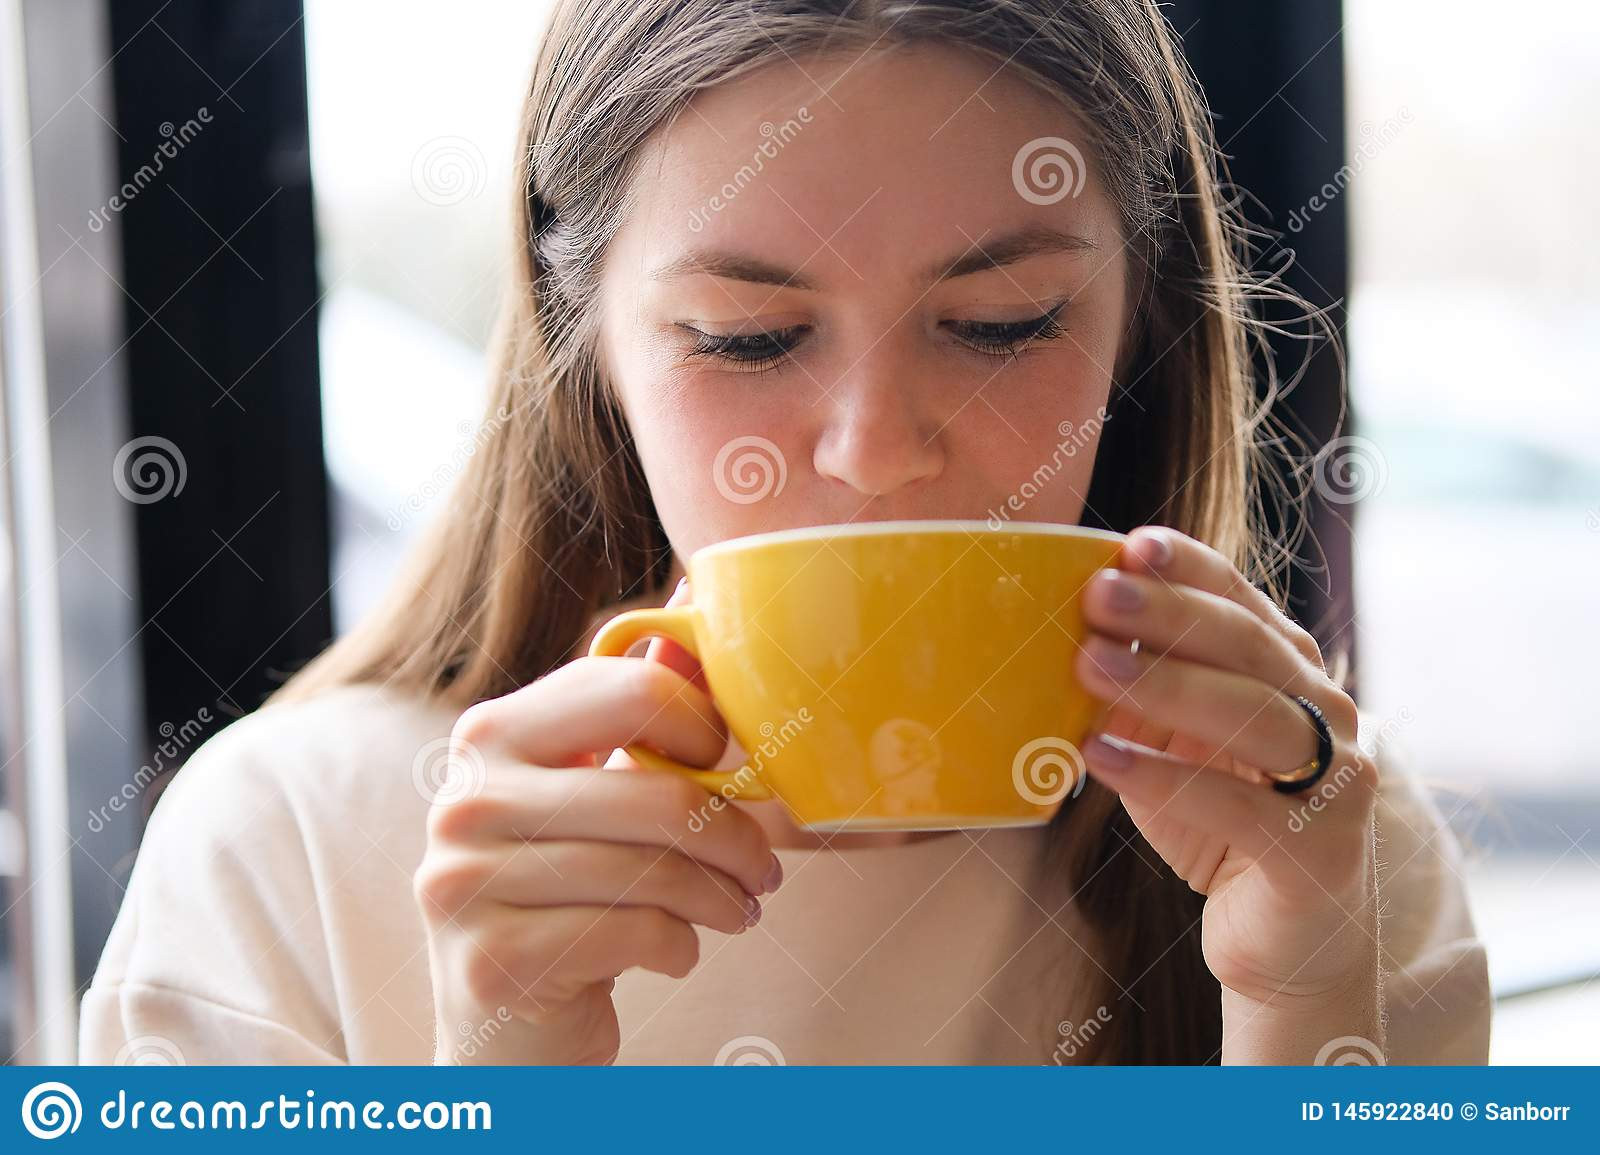 The girl drinks coffee from a yellow mug, looking down. Young beautiful woman sitting in a cafe, holding a Cup of cappuccino.